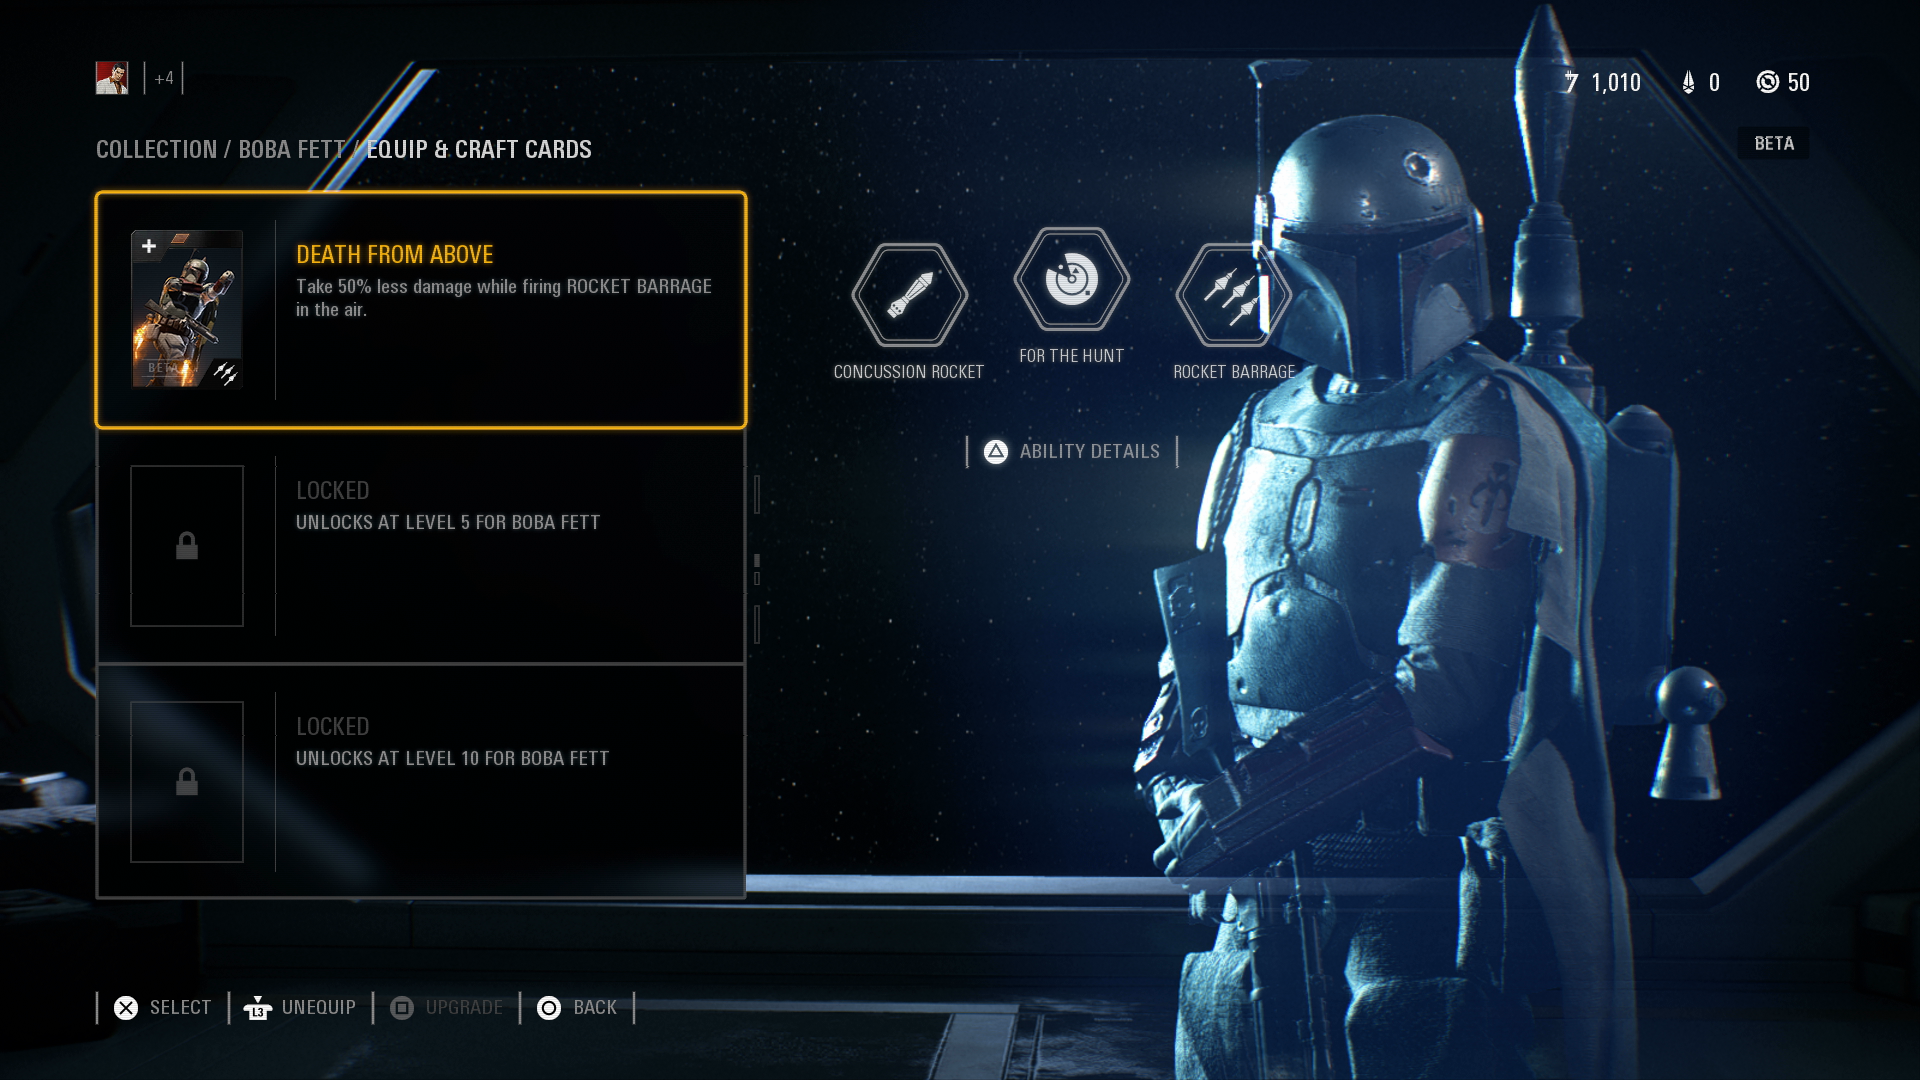 Star Wars Battlefront II's Progression System Changed Following Beta